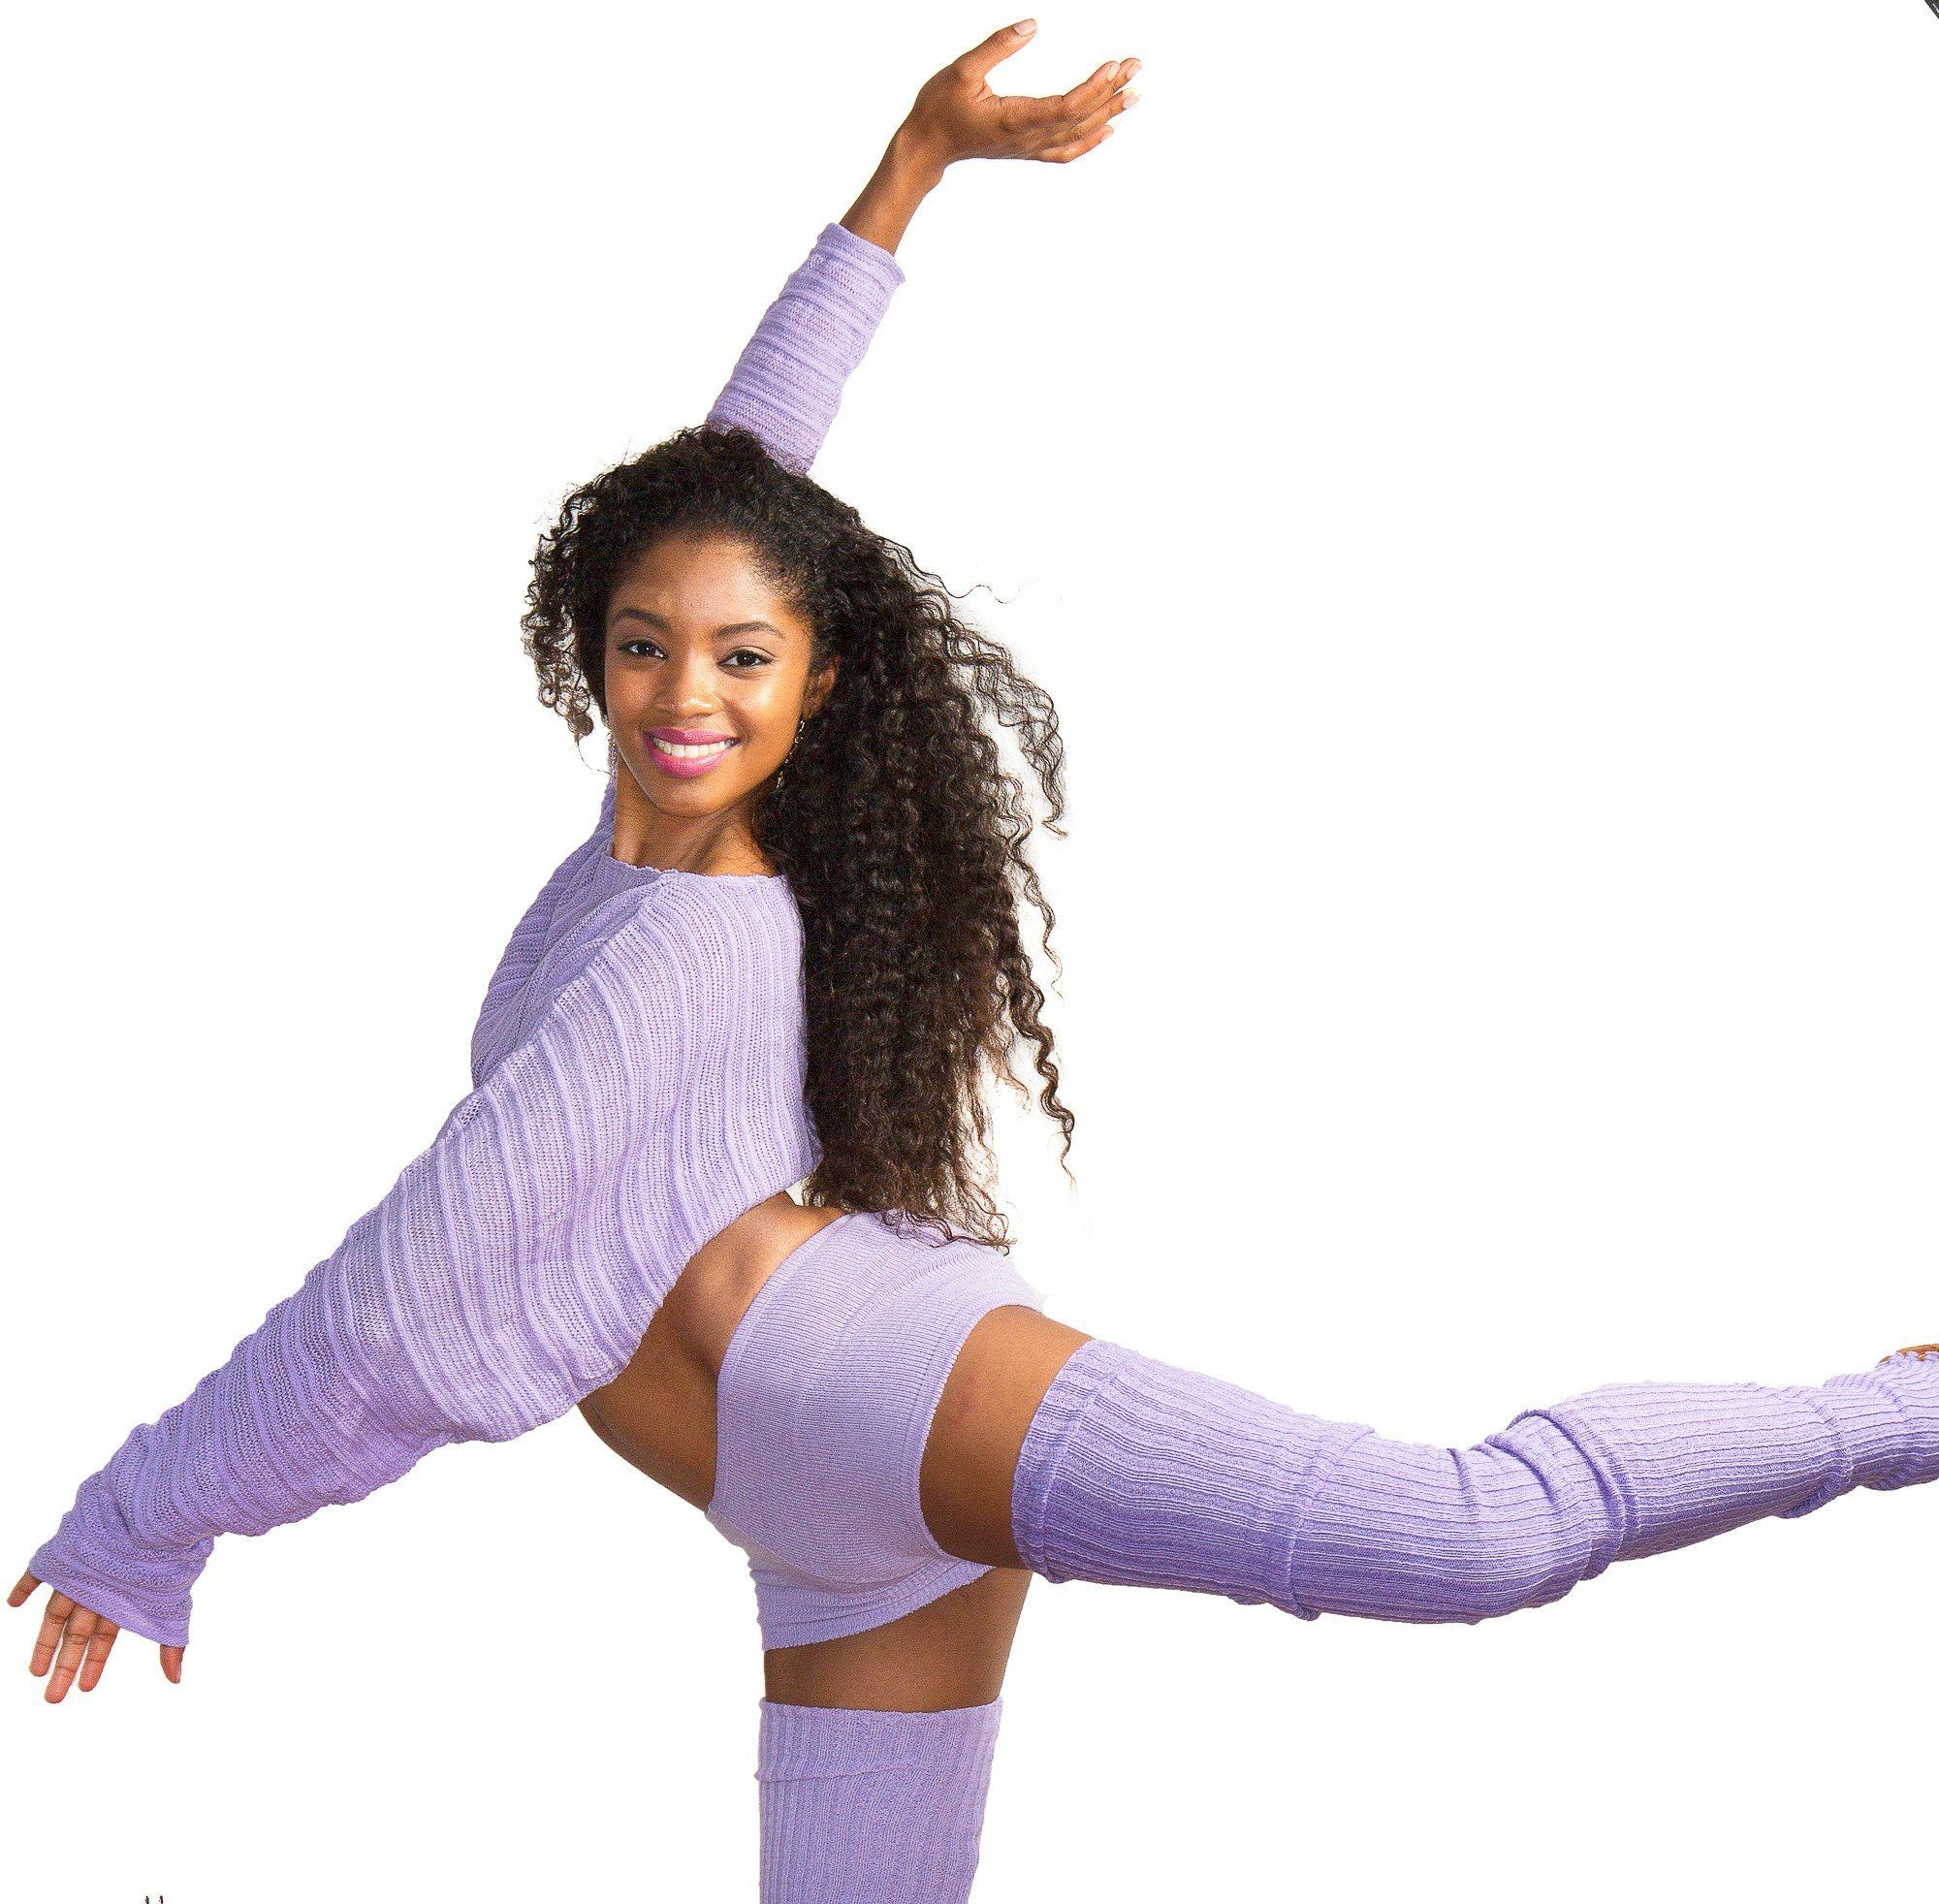 Ballet Yoga Dancewear 3 Pc Set Leg Warmers Sweater Top & Boy Shorts @KDdanceNewYork #MadeInUSA - 5